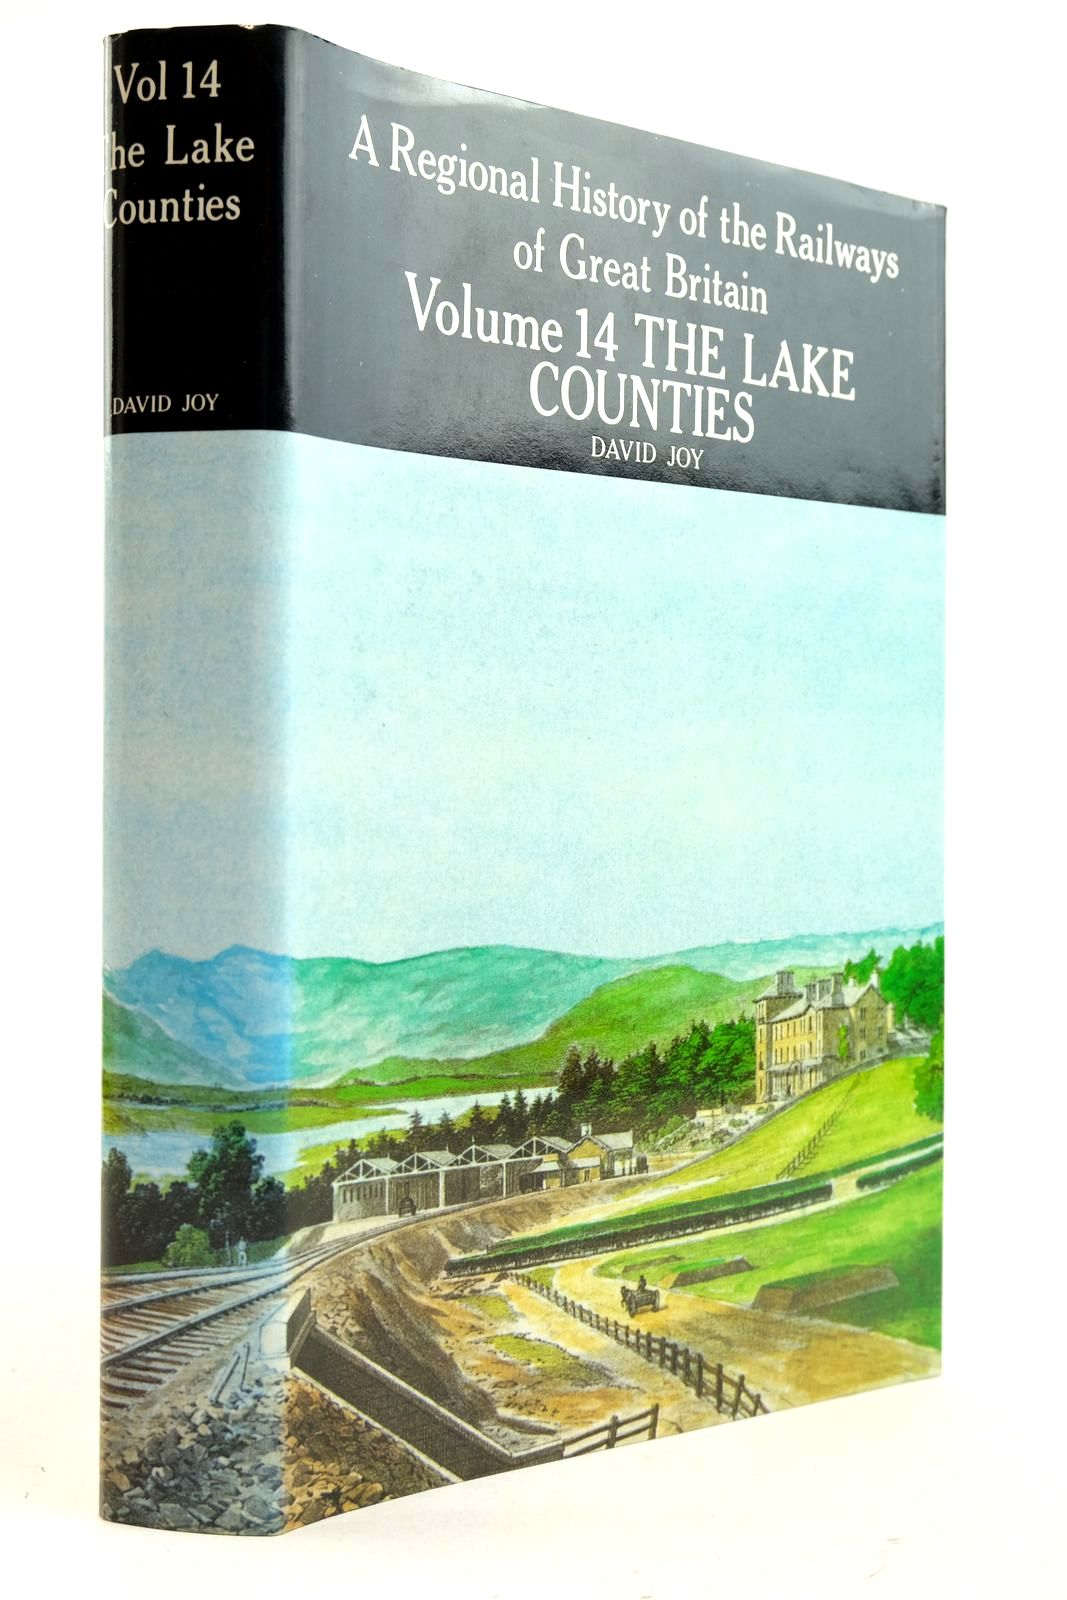 Photo of A REGIONAL HISTORY OF THE RAILWAYS OF GREAT BRITAIN VOLUME XIV THE LAKE COUNTIES- Stock Number: 2133058